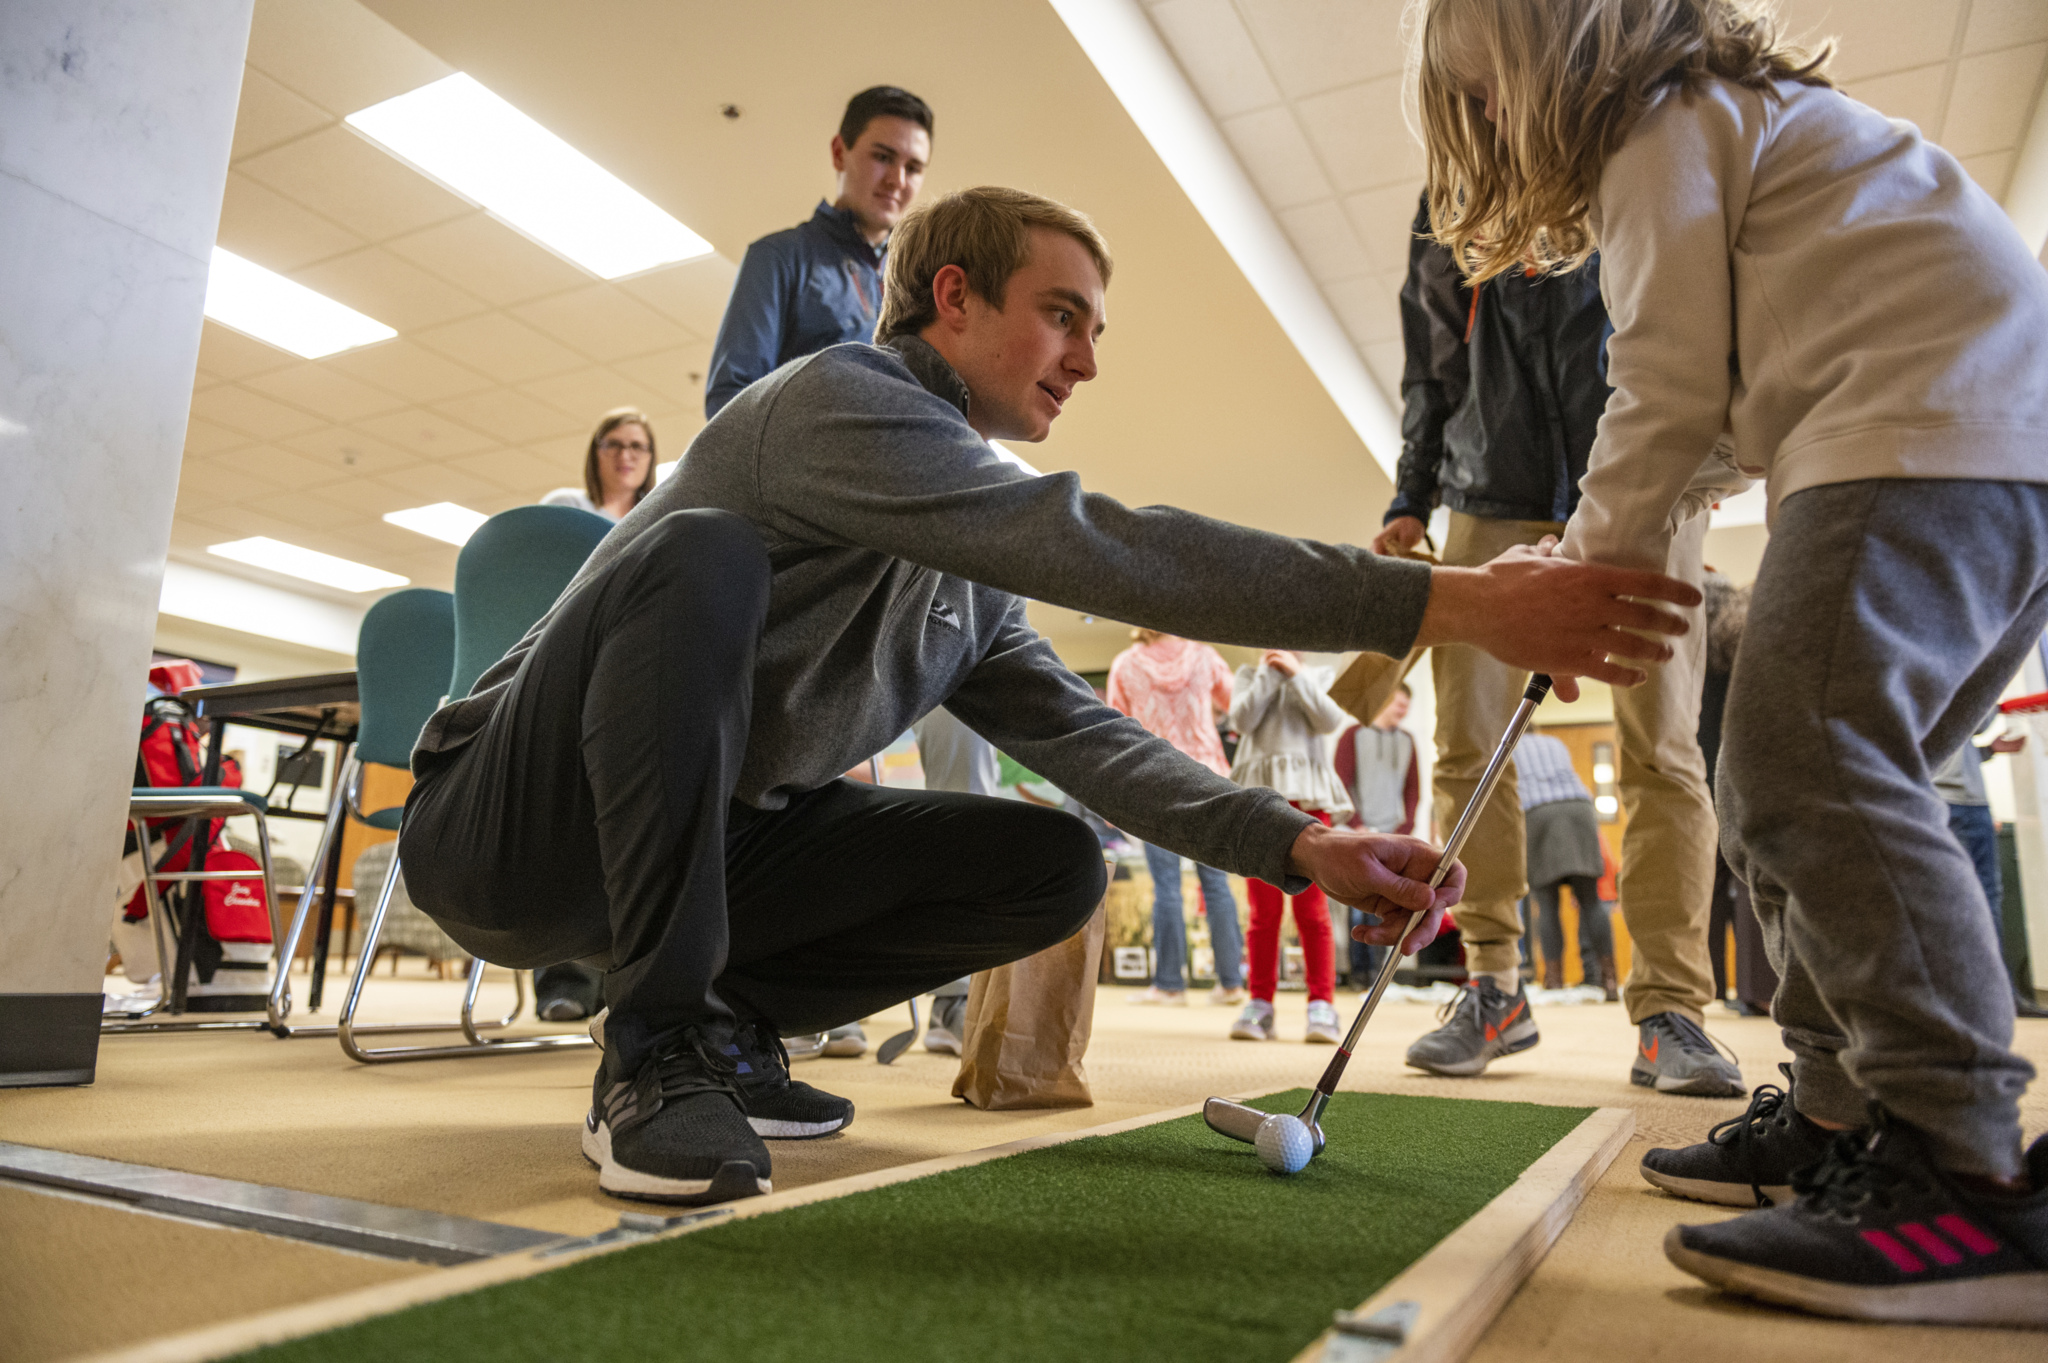 A professional golf management student demonstrates proper putting techniques to a child during CASNR Community night